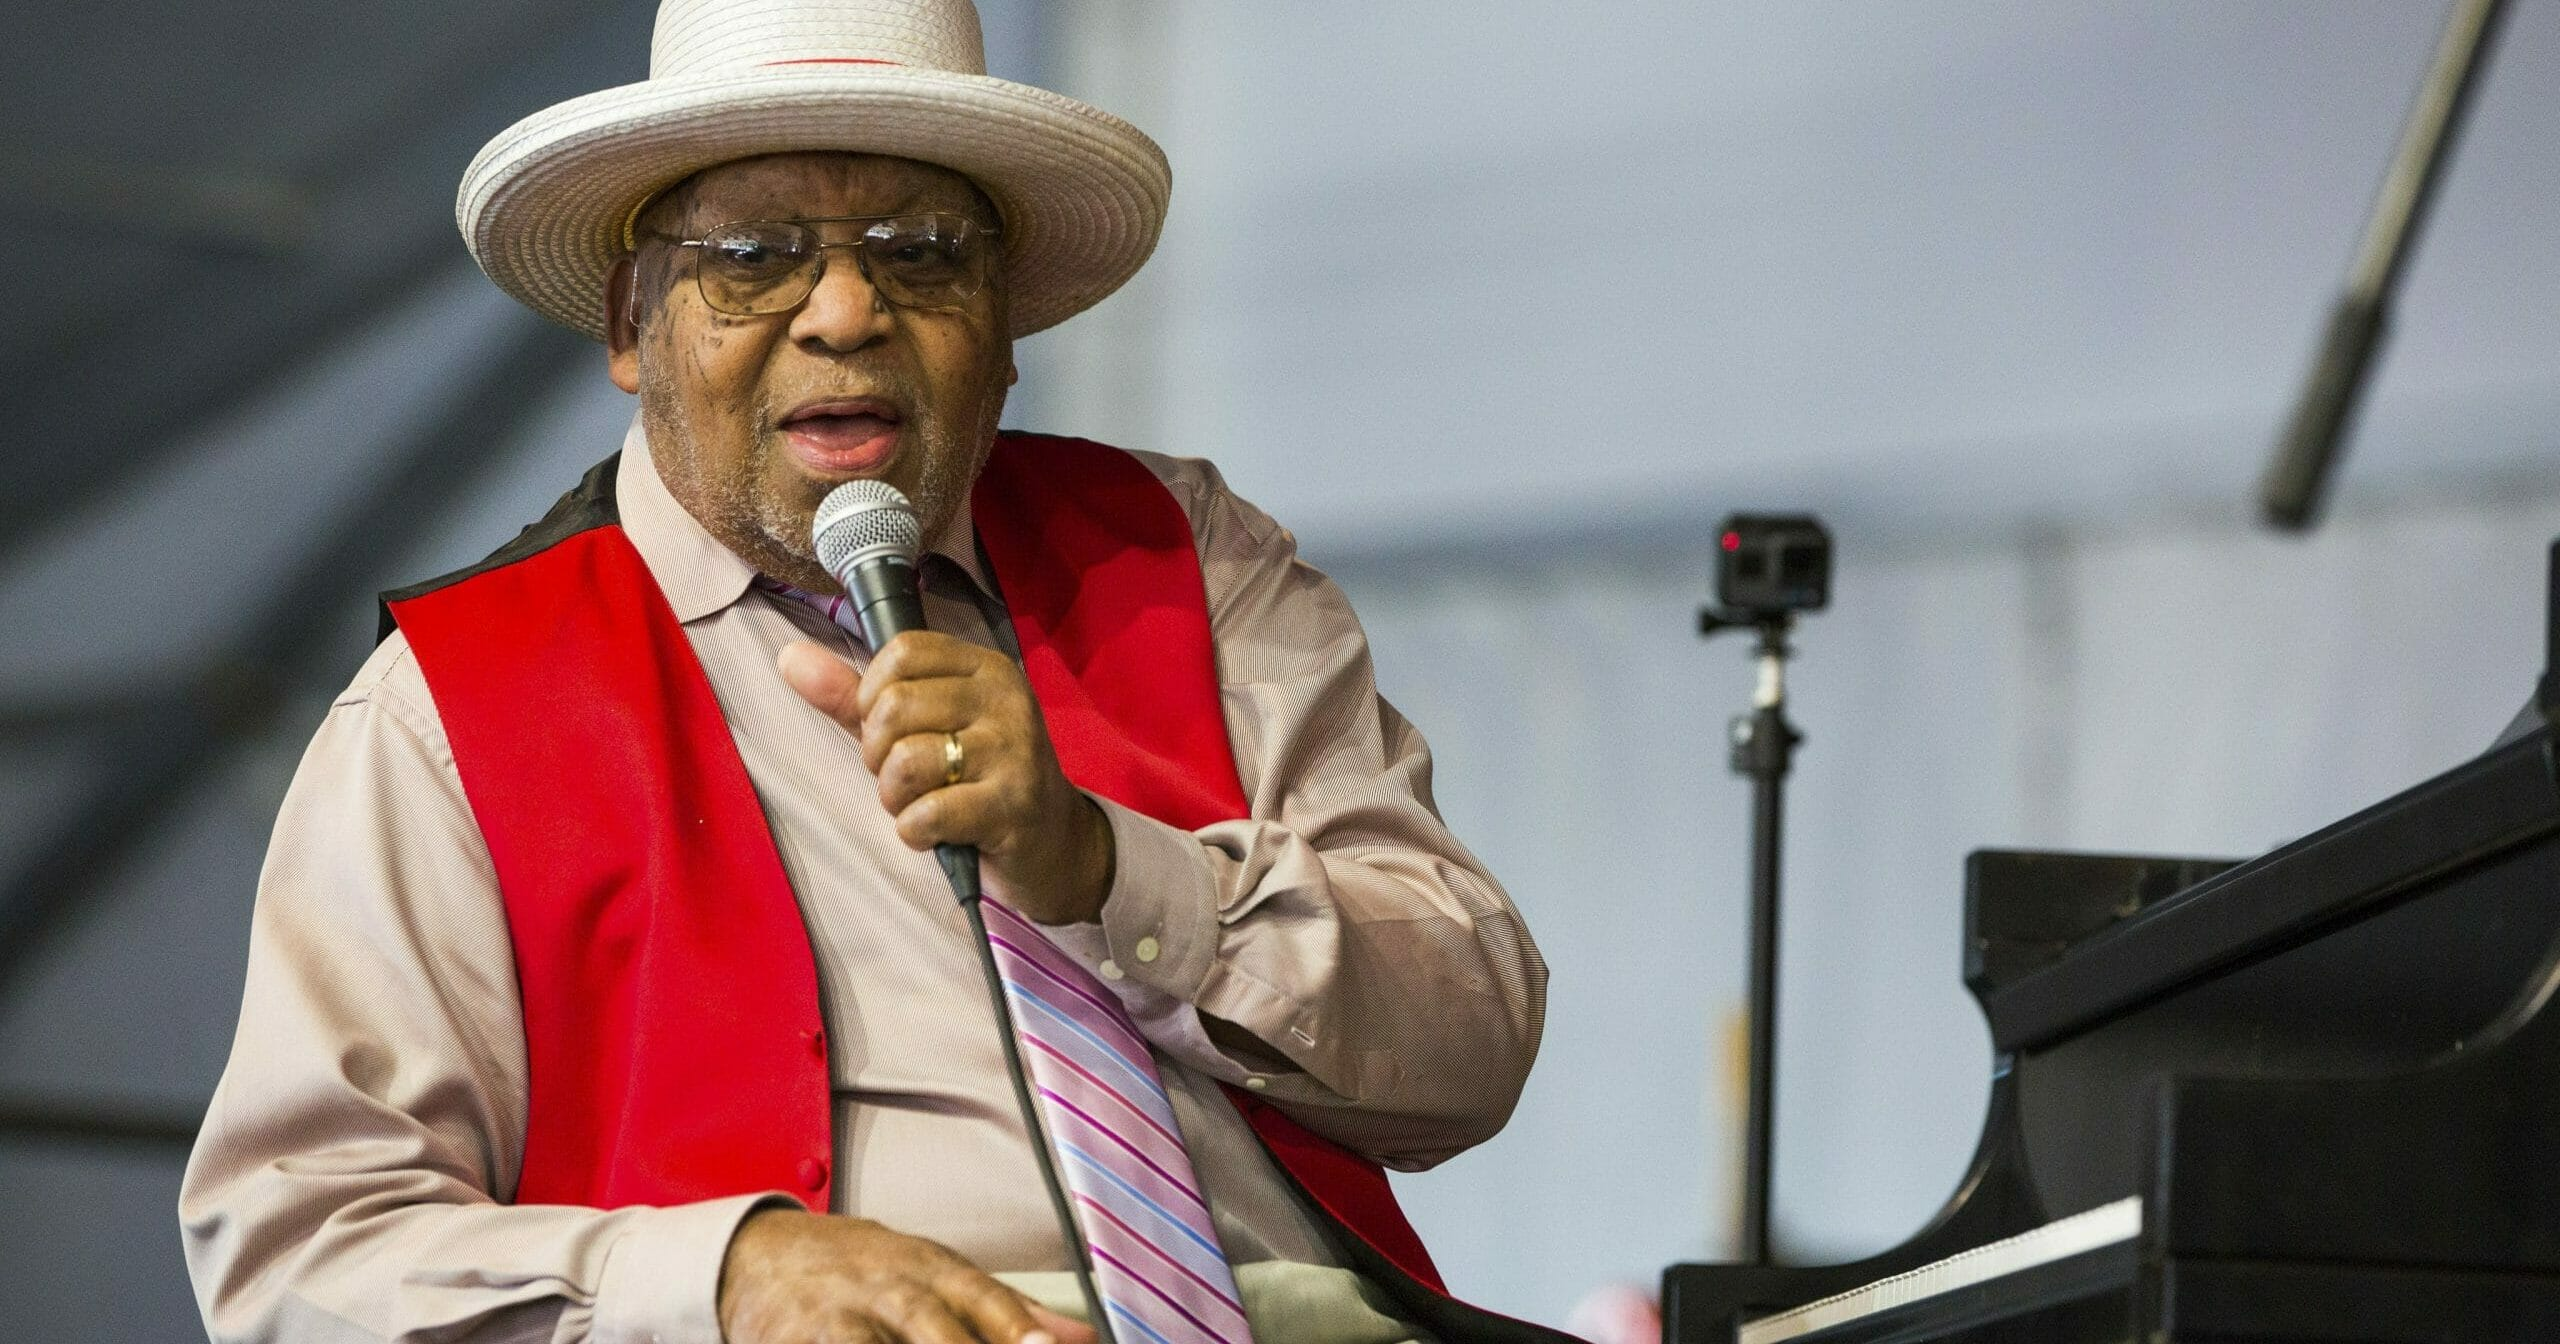 Ellis Marsalis is seen onstage April 28, 2019, during the New Orleans Jazz & Heritage Festival in New Orleans.